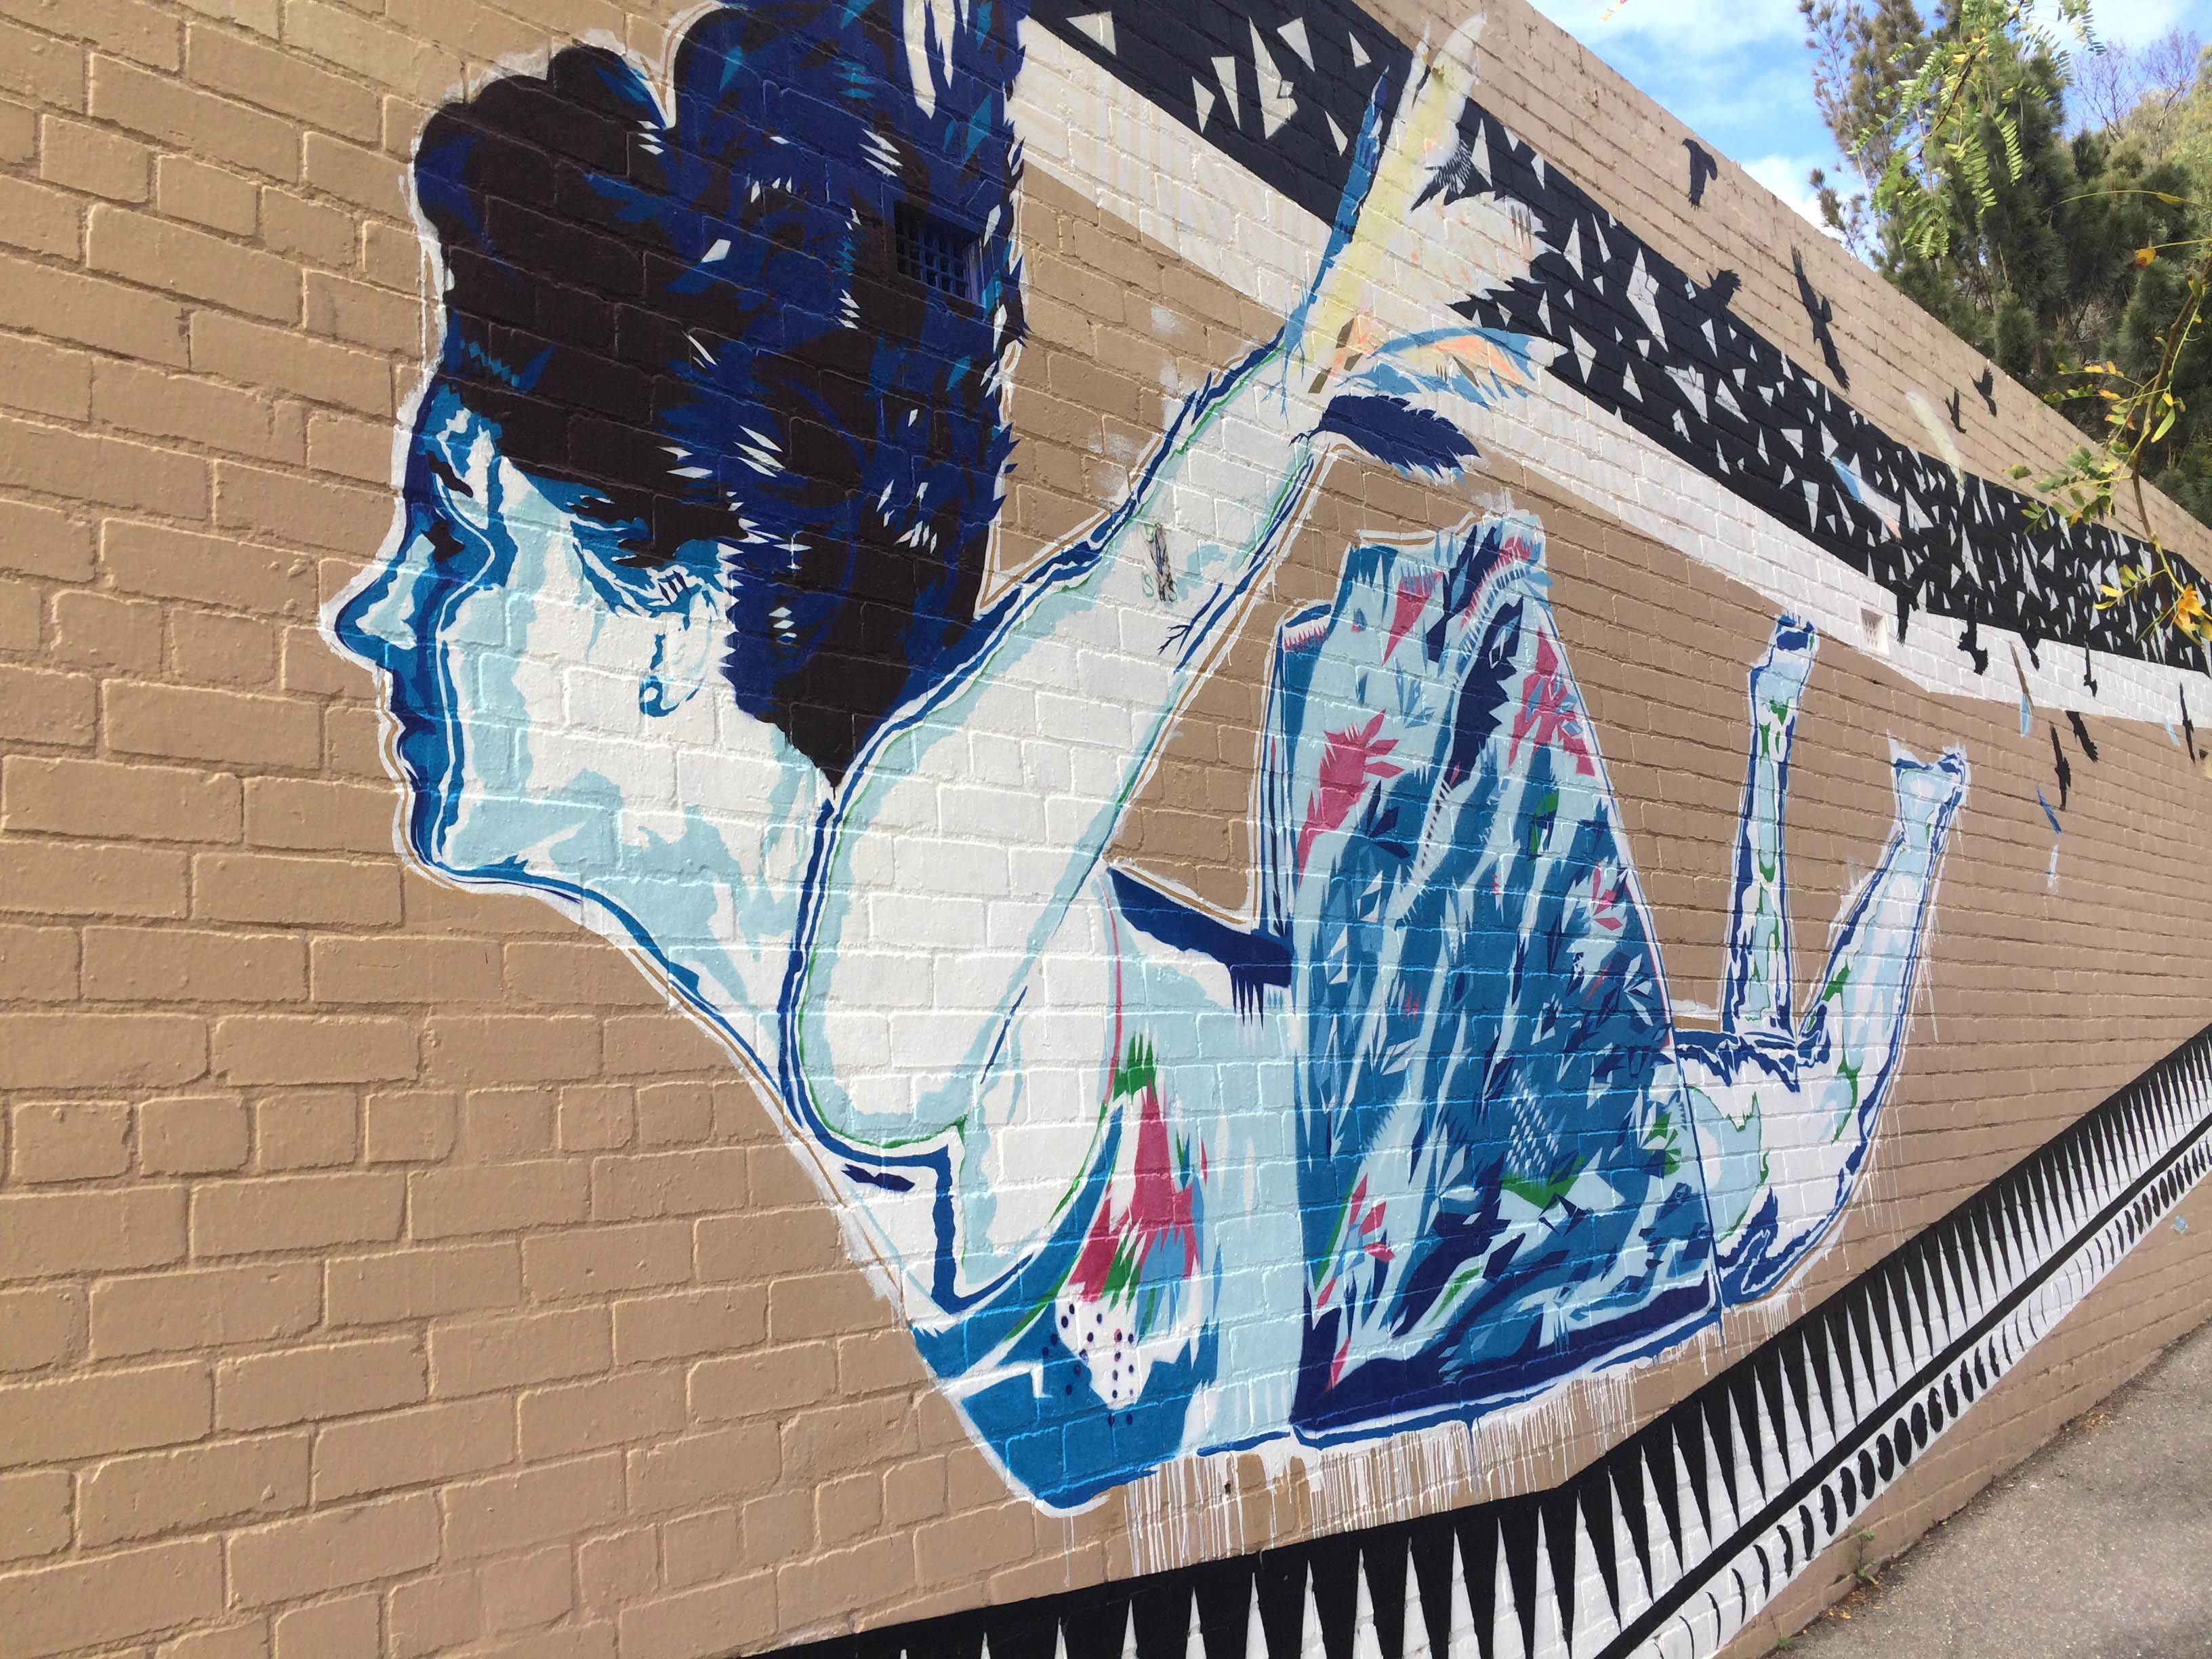 Mural by Vexta, Meat Market, North Melbourne, Victoria, Australia